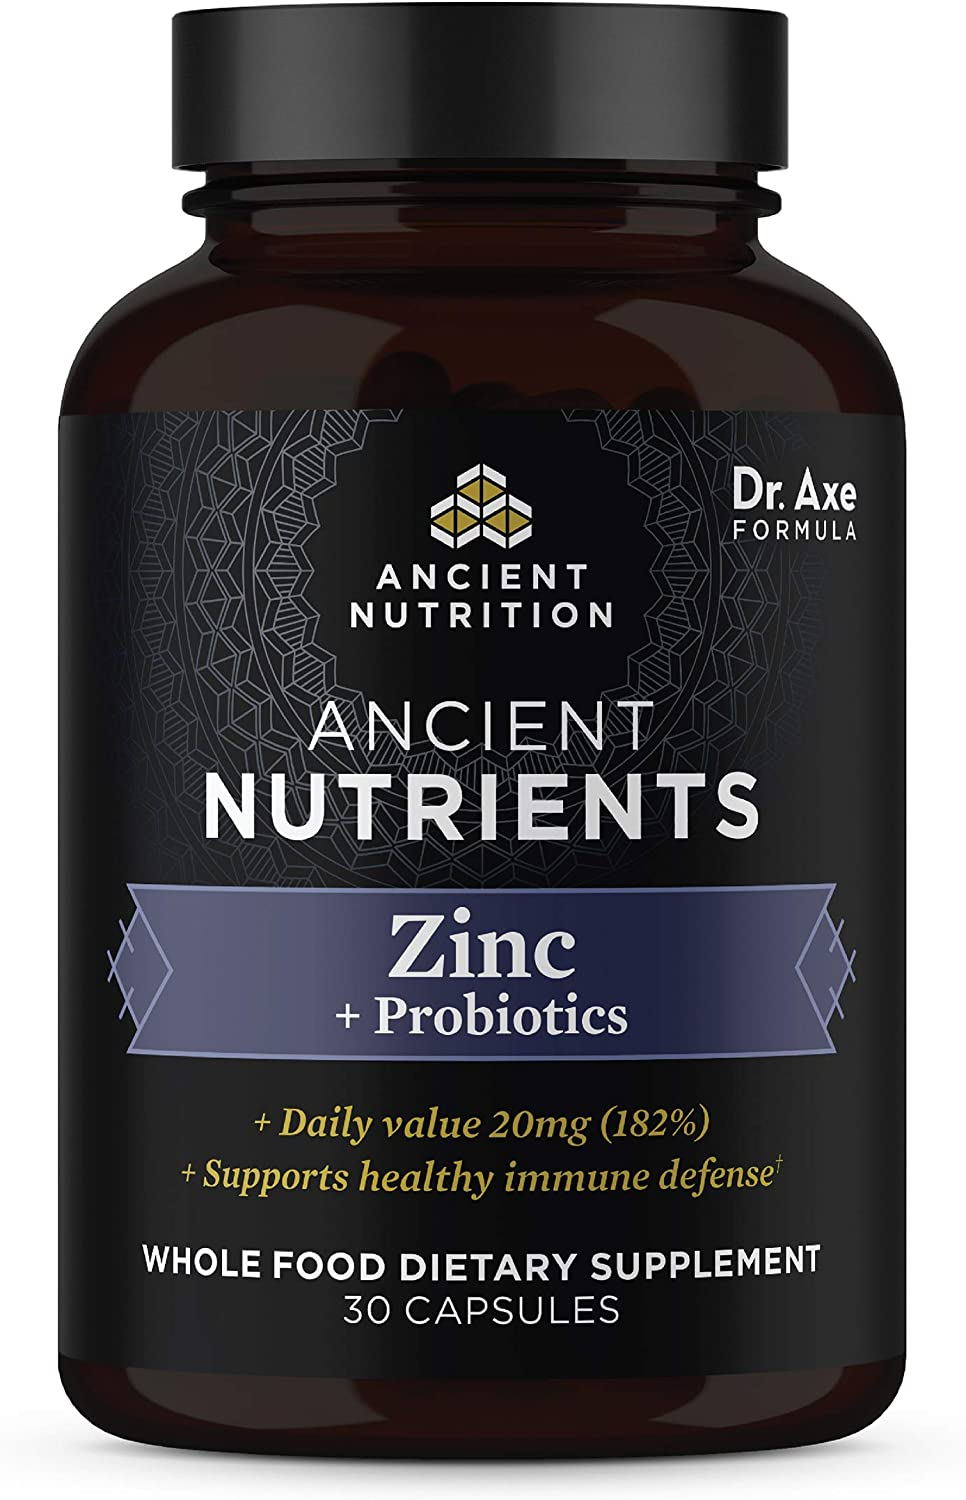 Zinc + Probiotics, 20 mg, Ancient Nutrients Zinc Whole Food Dietary Supplement, Formulated by Dr. Josh Axe, Immune System Support, Made Without GMOs, Superfood Supplement, 30 Capsules